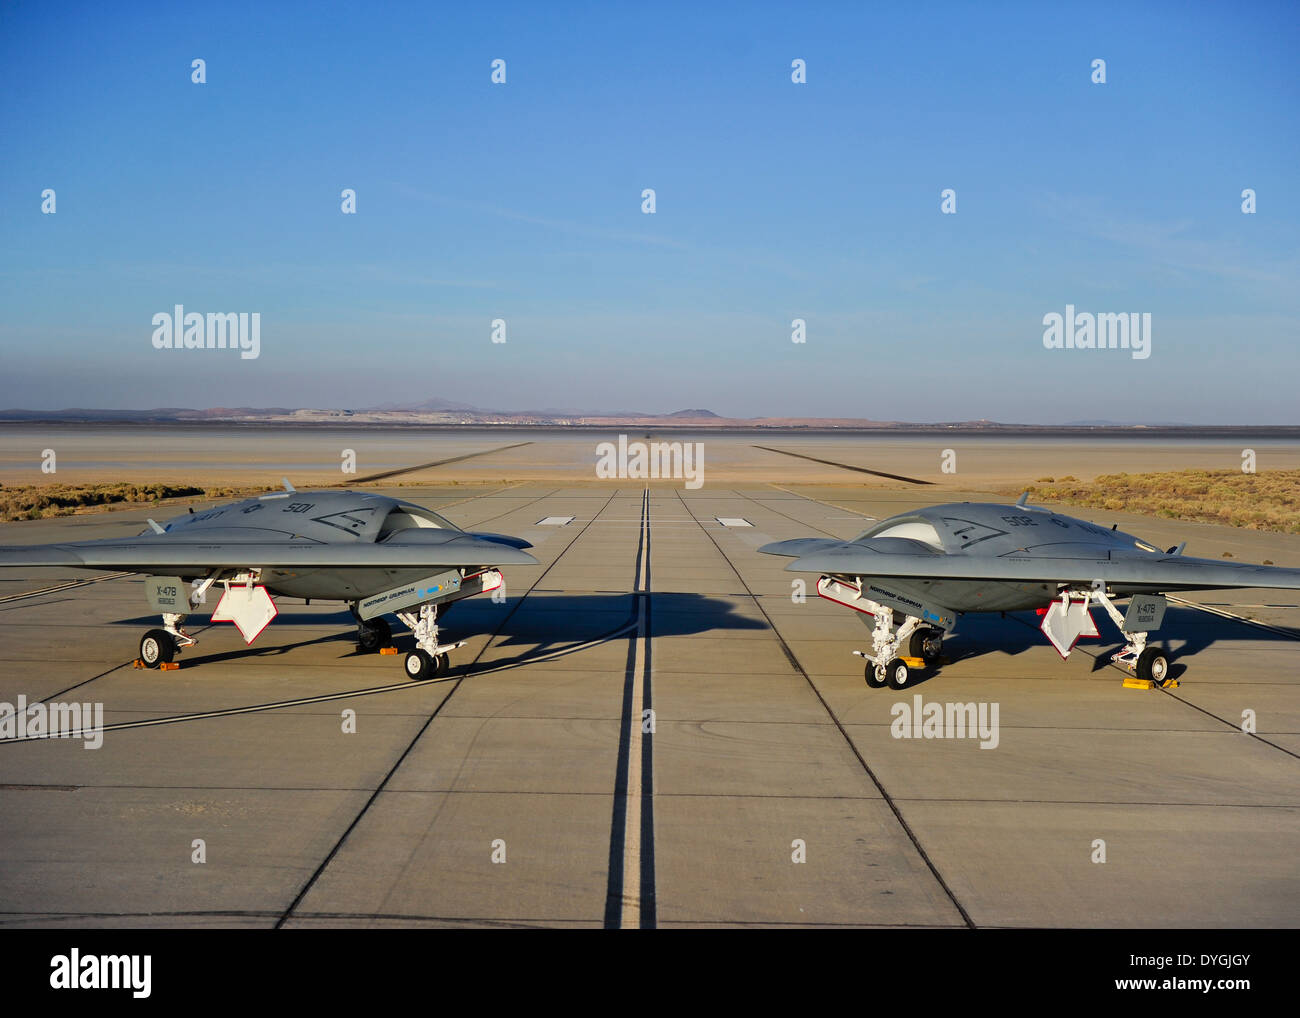 US Navy unmanned X-47B drone aircraft at Edwards Air Base October 10, 2011 in Lancaster, California. - Stock Image